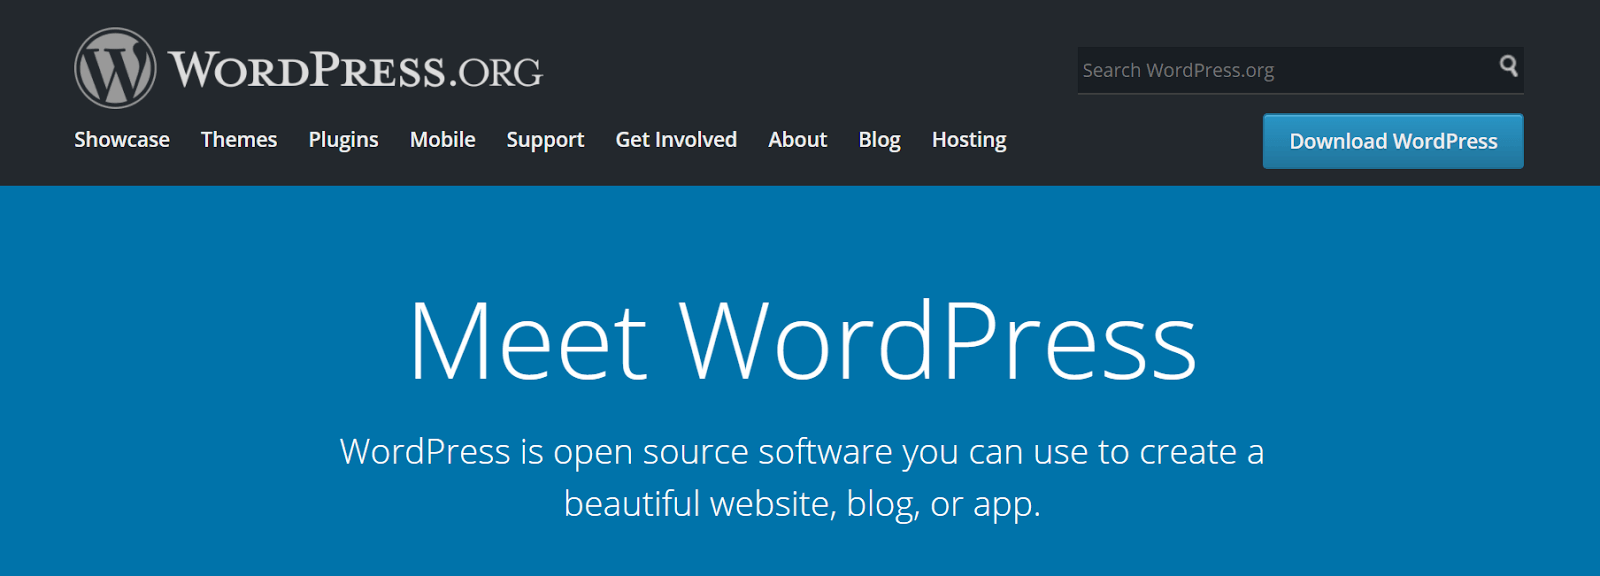 wordpress-home-page.PNG